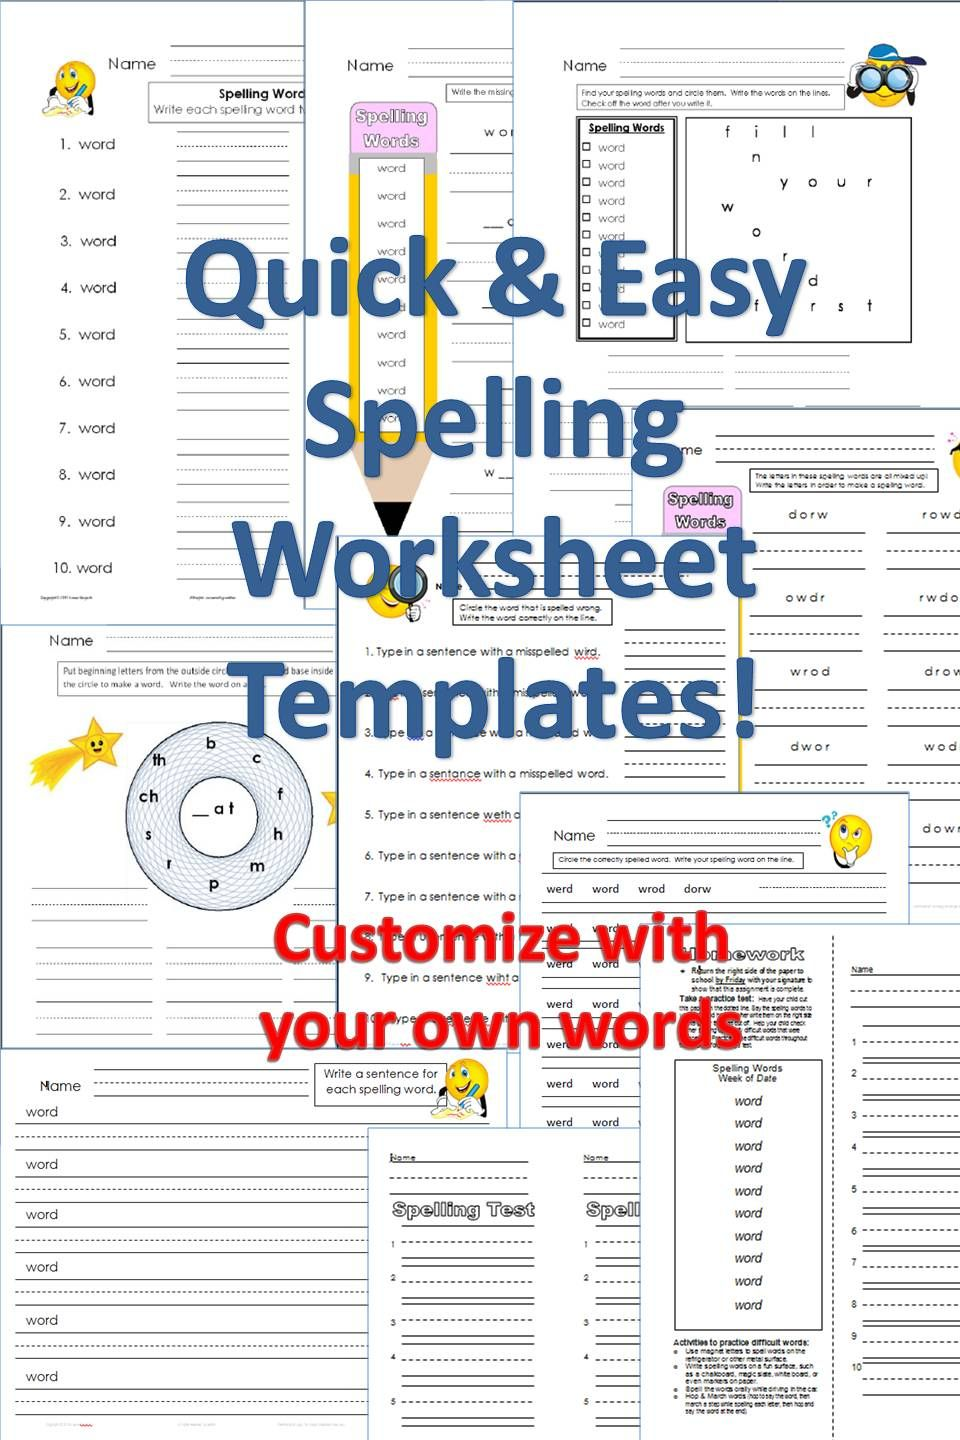 Uncategorized Make Your Own Spelling Worksheets spelling worksheet templates pack customize with your words for easy peasy way to make own worksheets just replace with